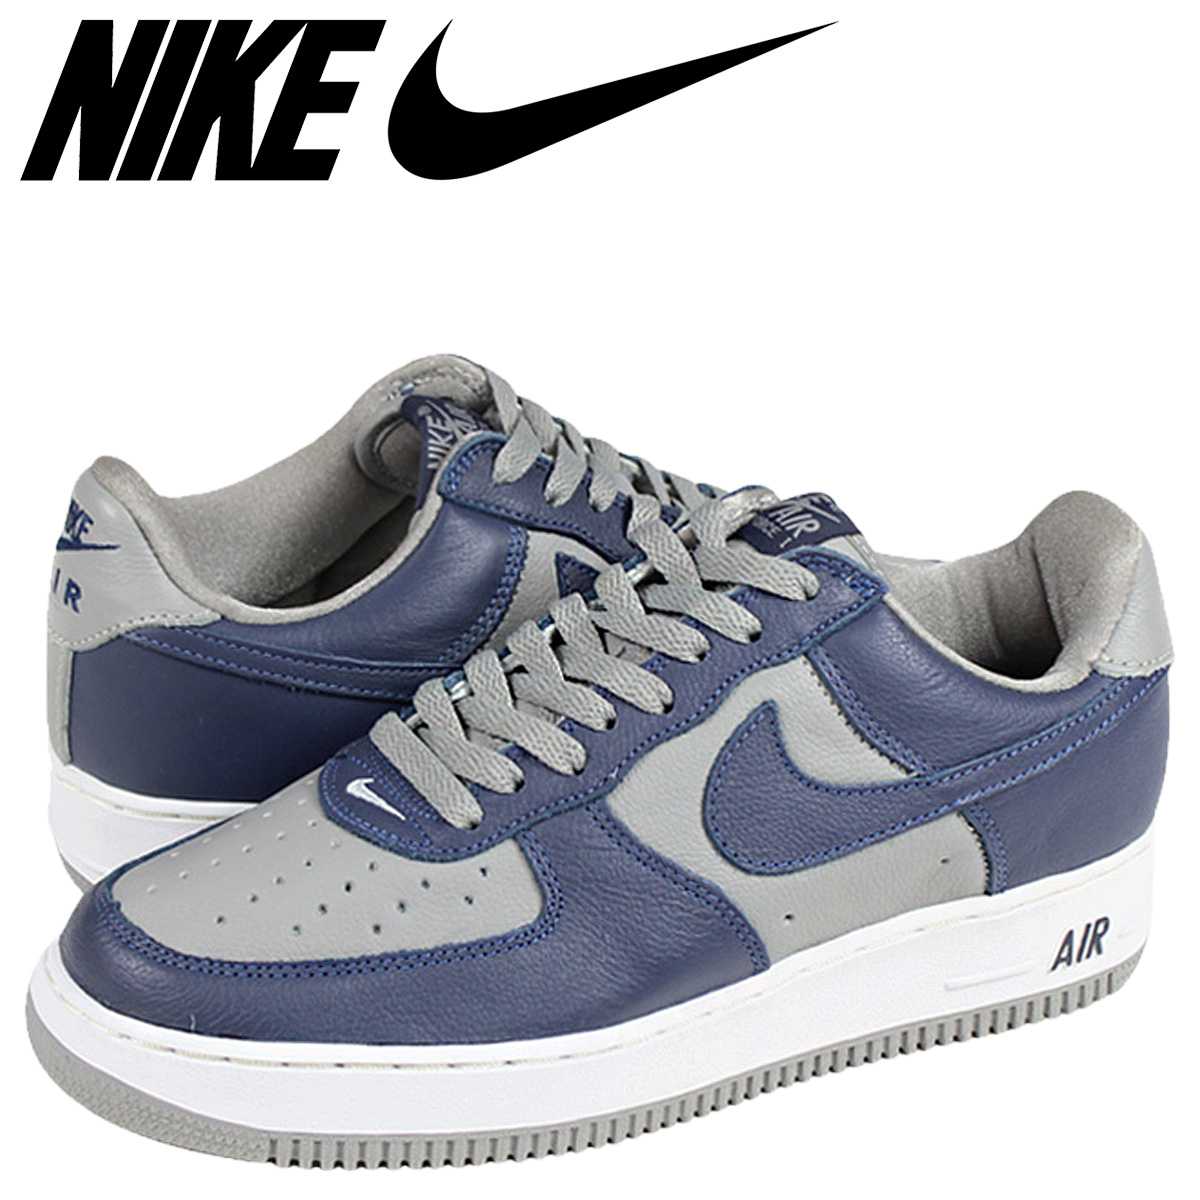 630 Sneakers Air 033 044 Force Gray 1 Atto Nike Mos Color Men Low Suggestion PXOZuTki